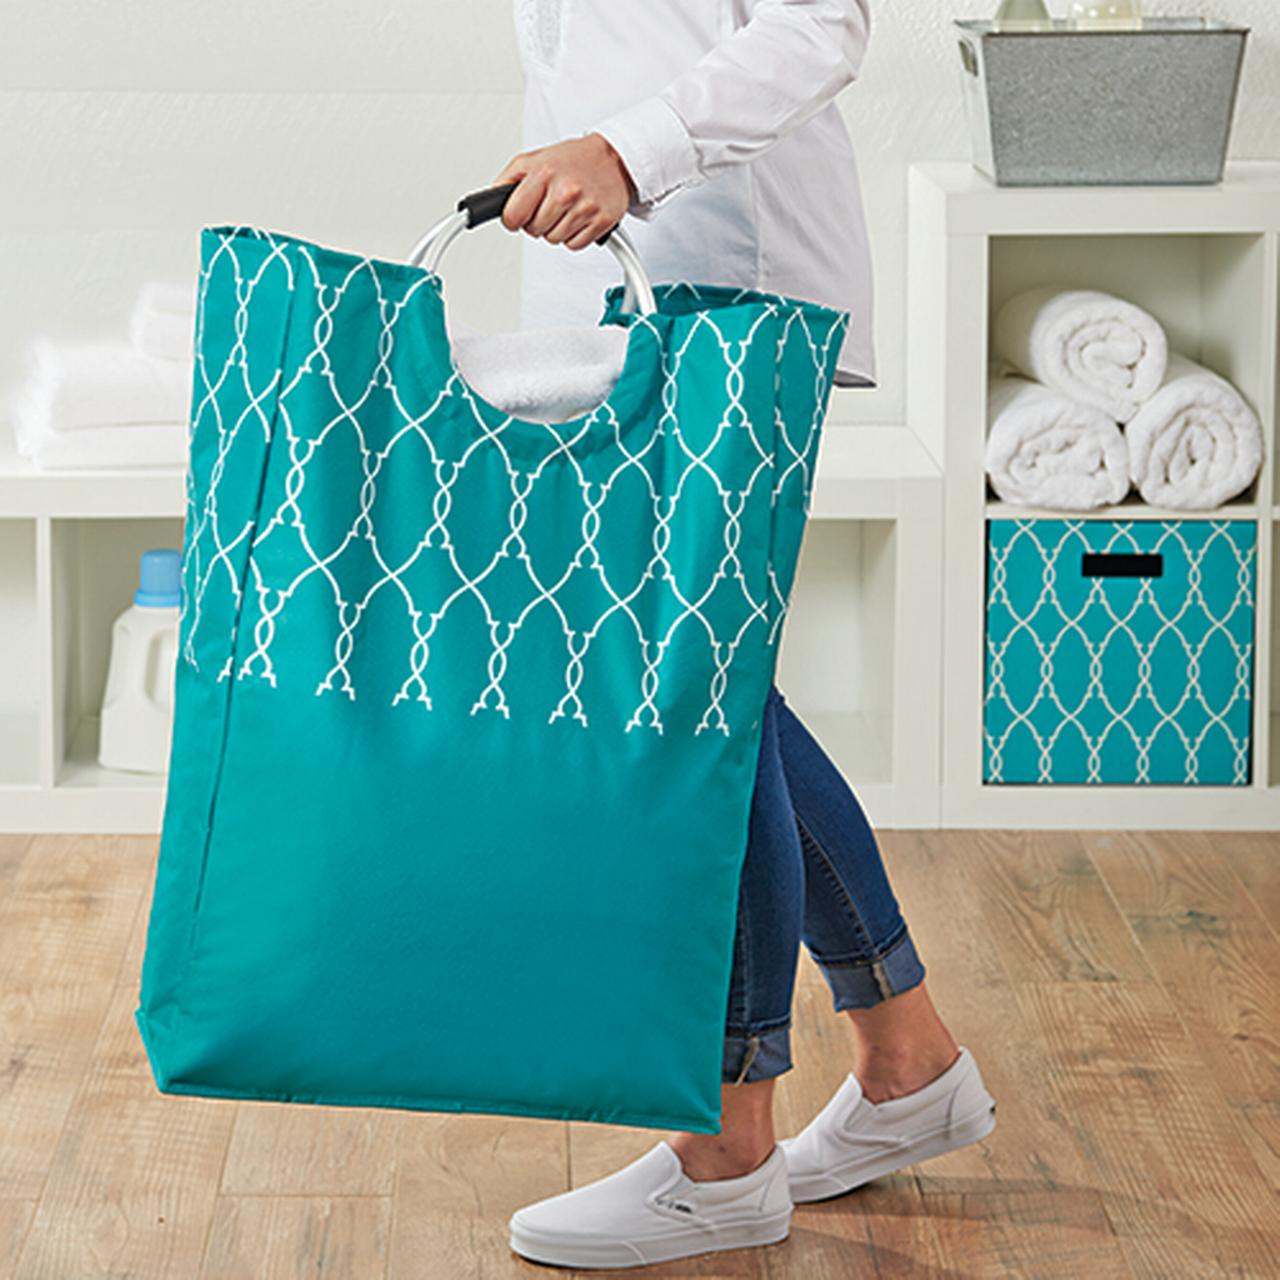 Better Homes and Gardens Laundry Bag Tote Canvas with Handles